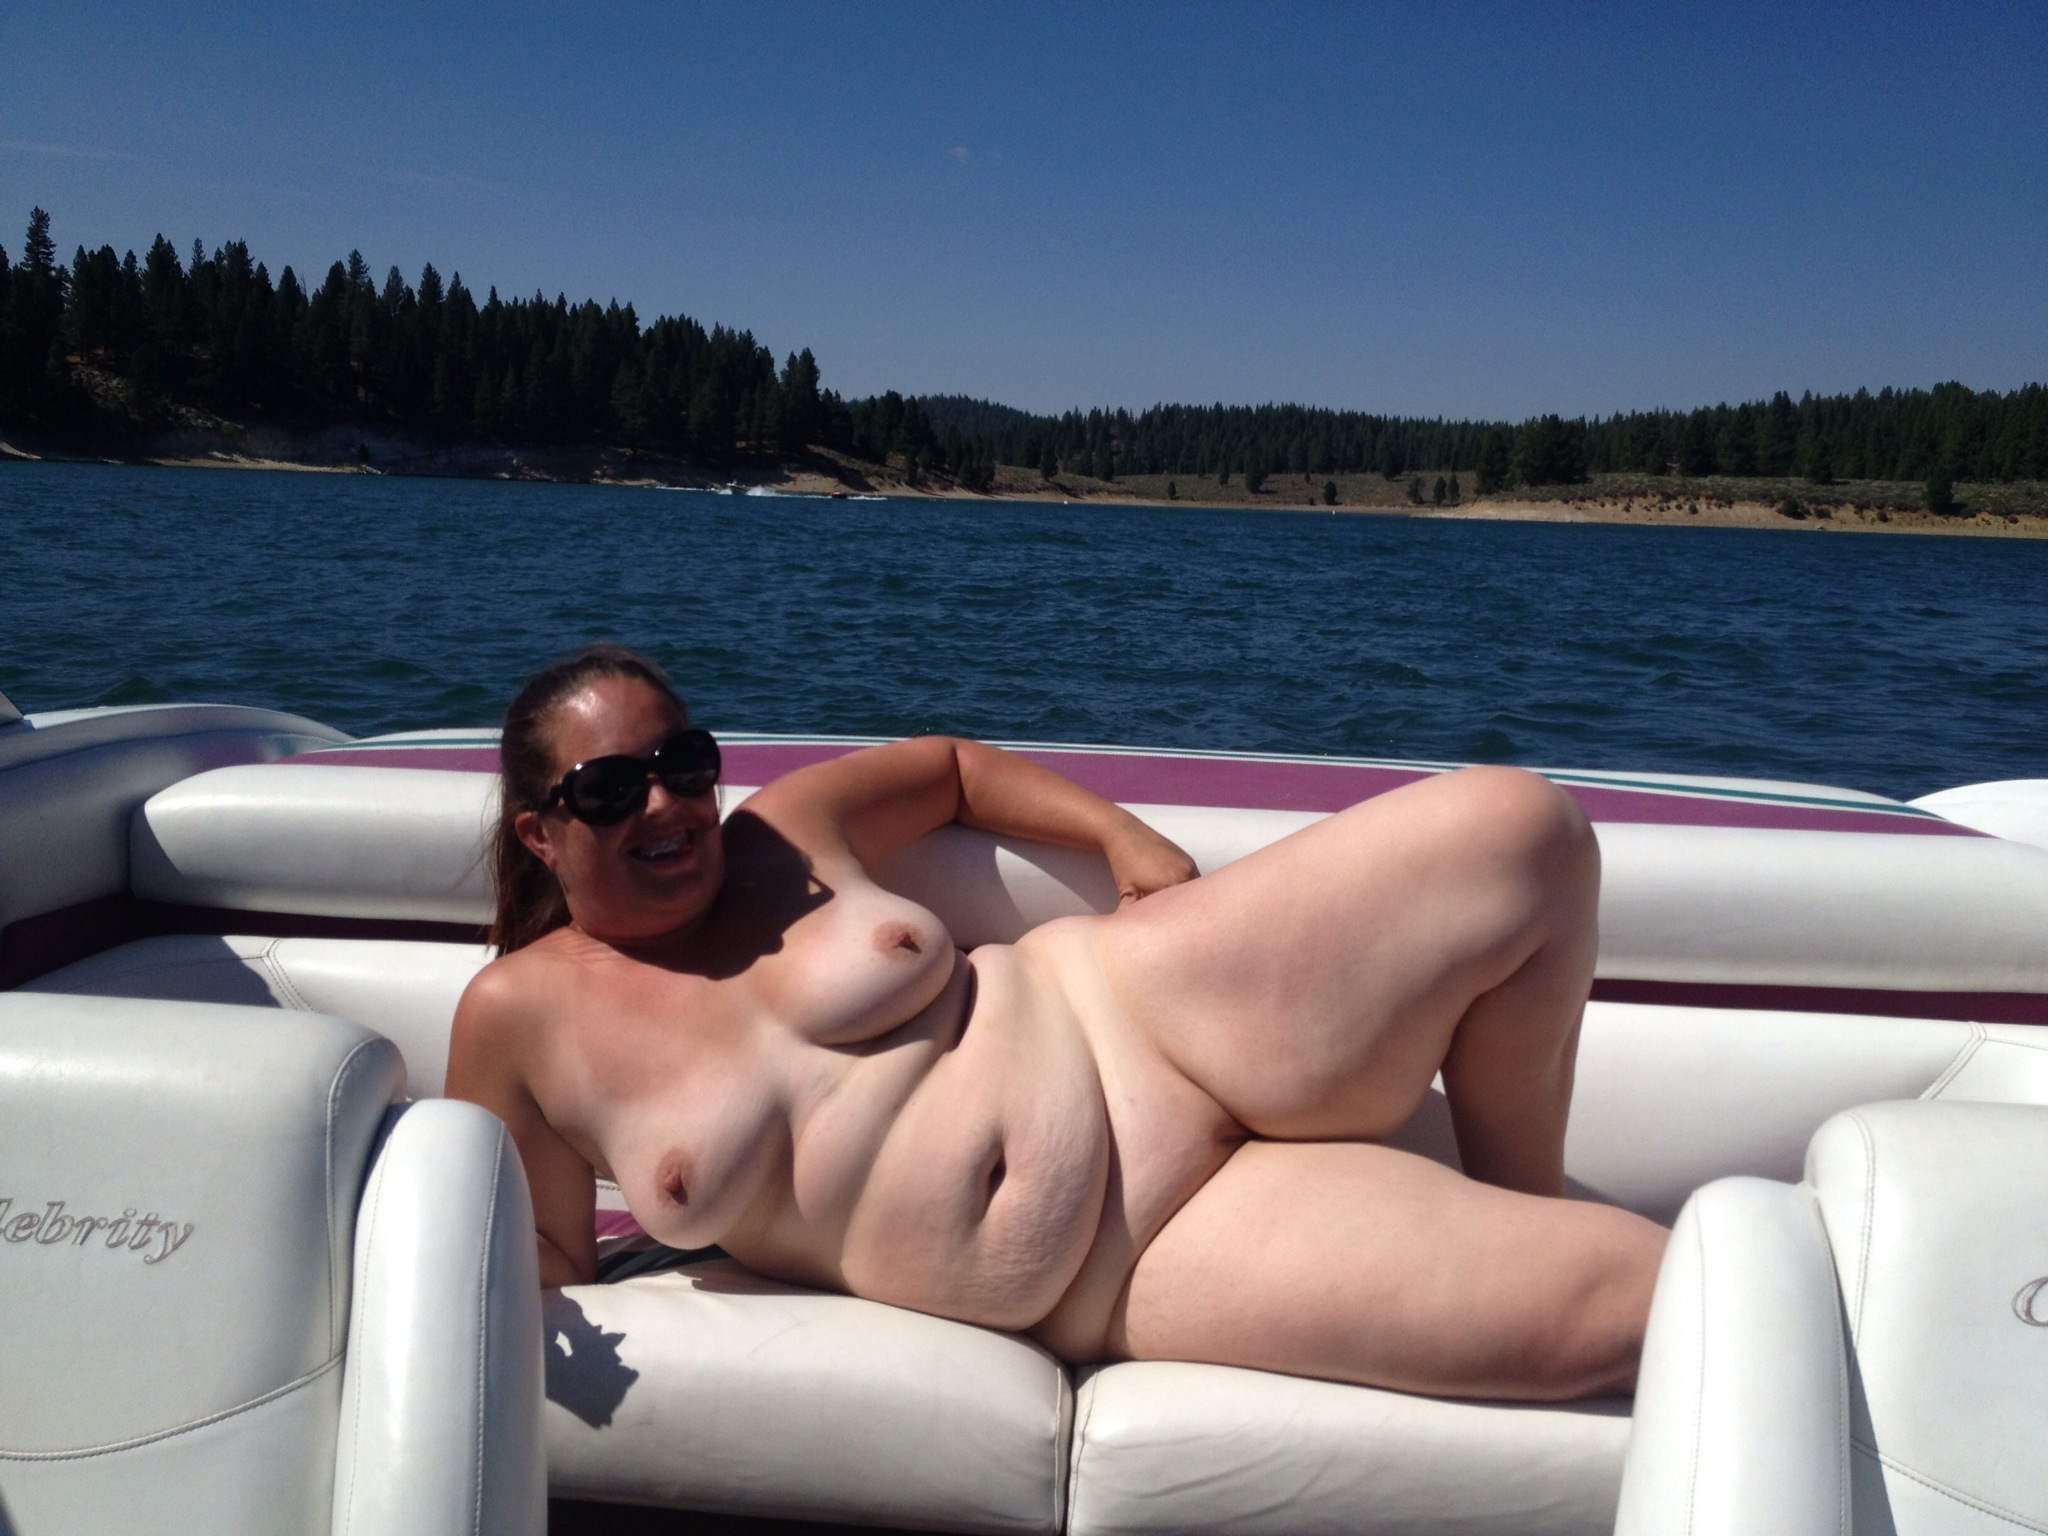 On boats girls nude